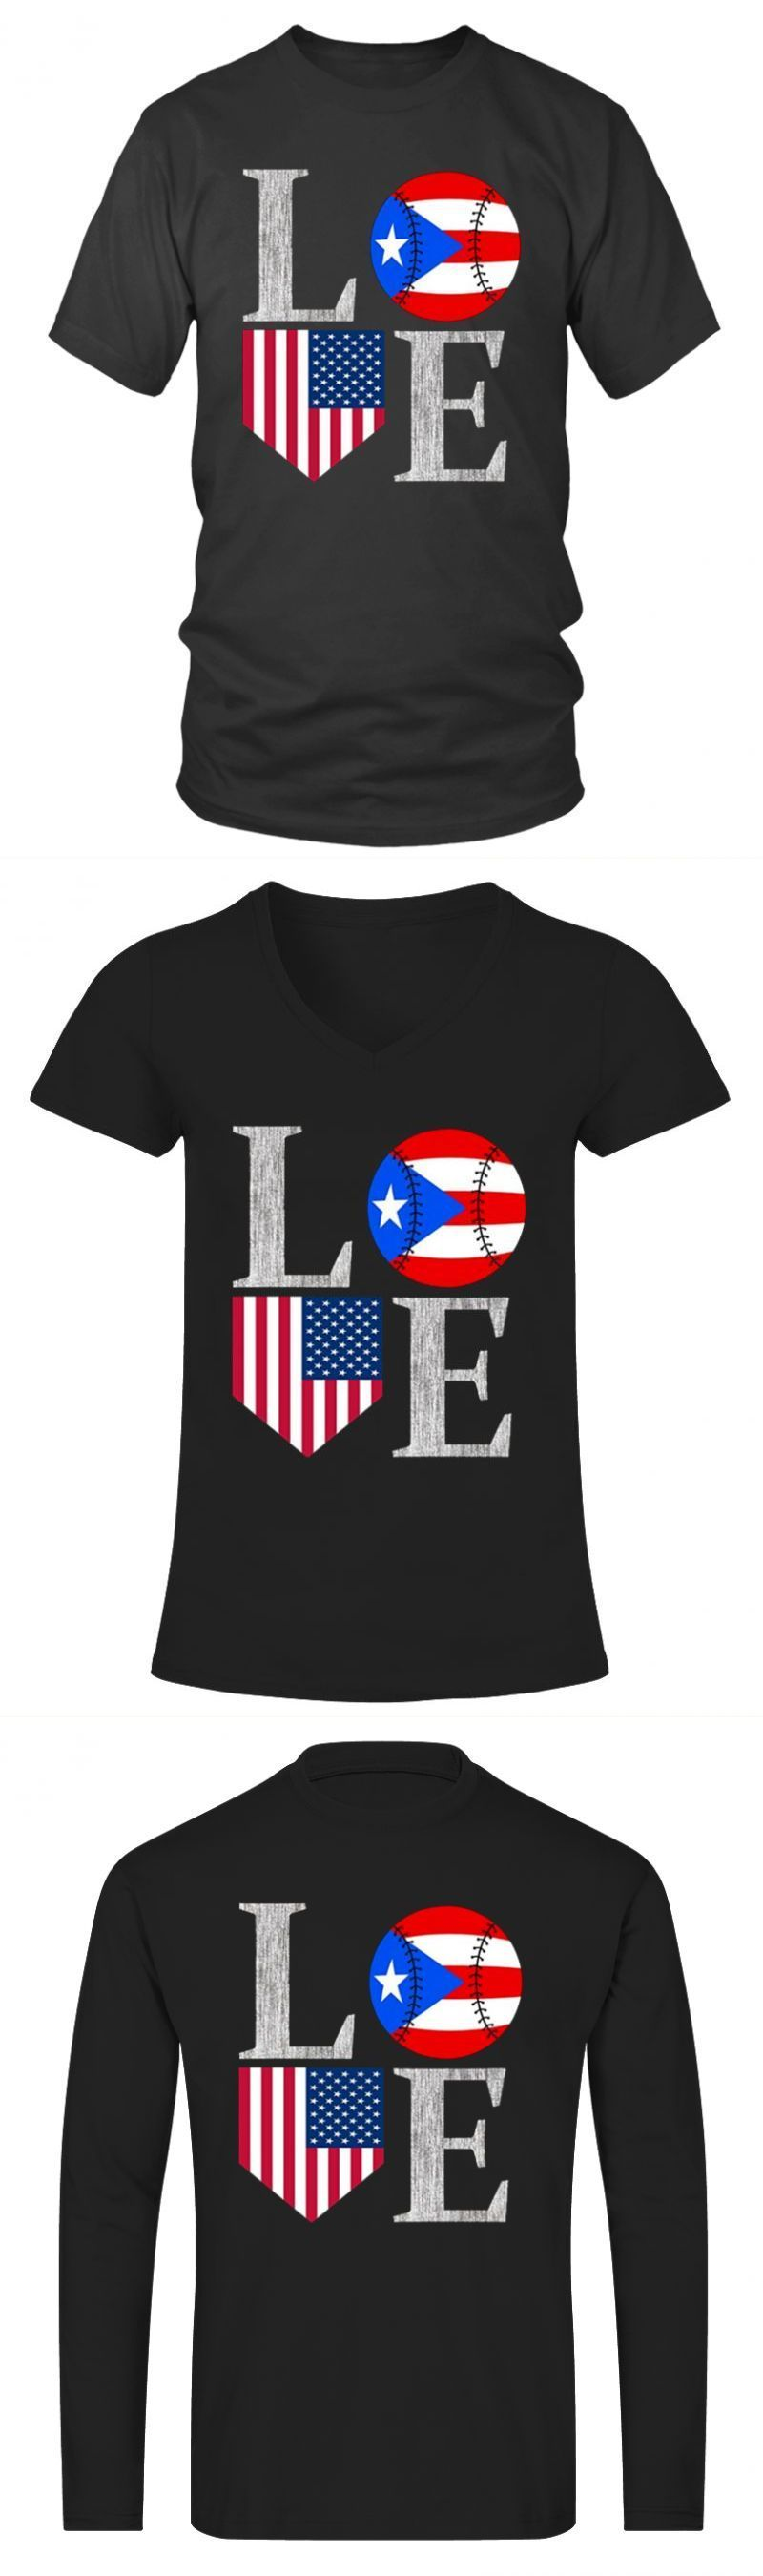 6ff3c690 T shirt printers rugby puerto rican love baseball home usa rugby t shirt  paris #shirt #printers #rugby #puerto #rican #love #baseball #home #usa  #paris ...